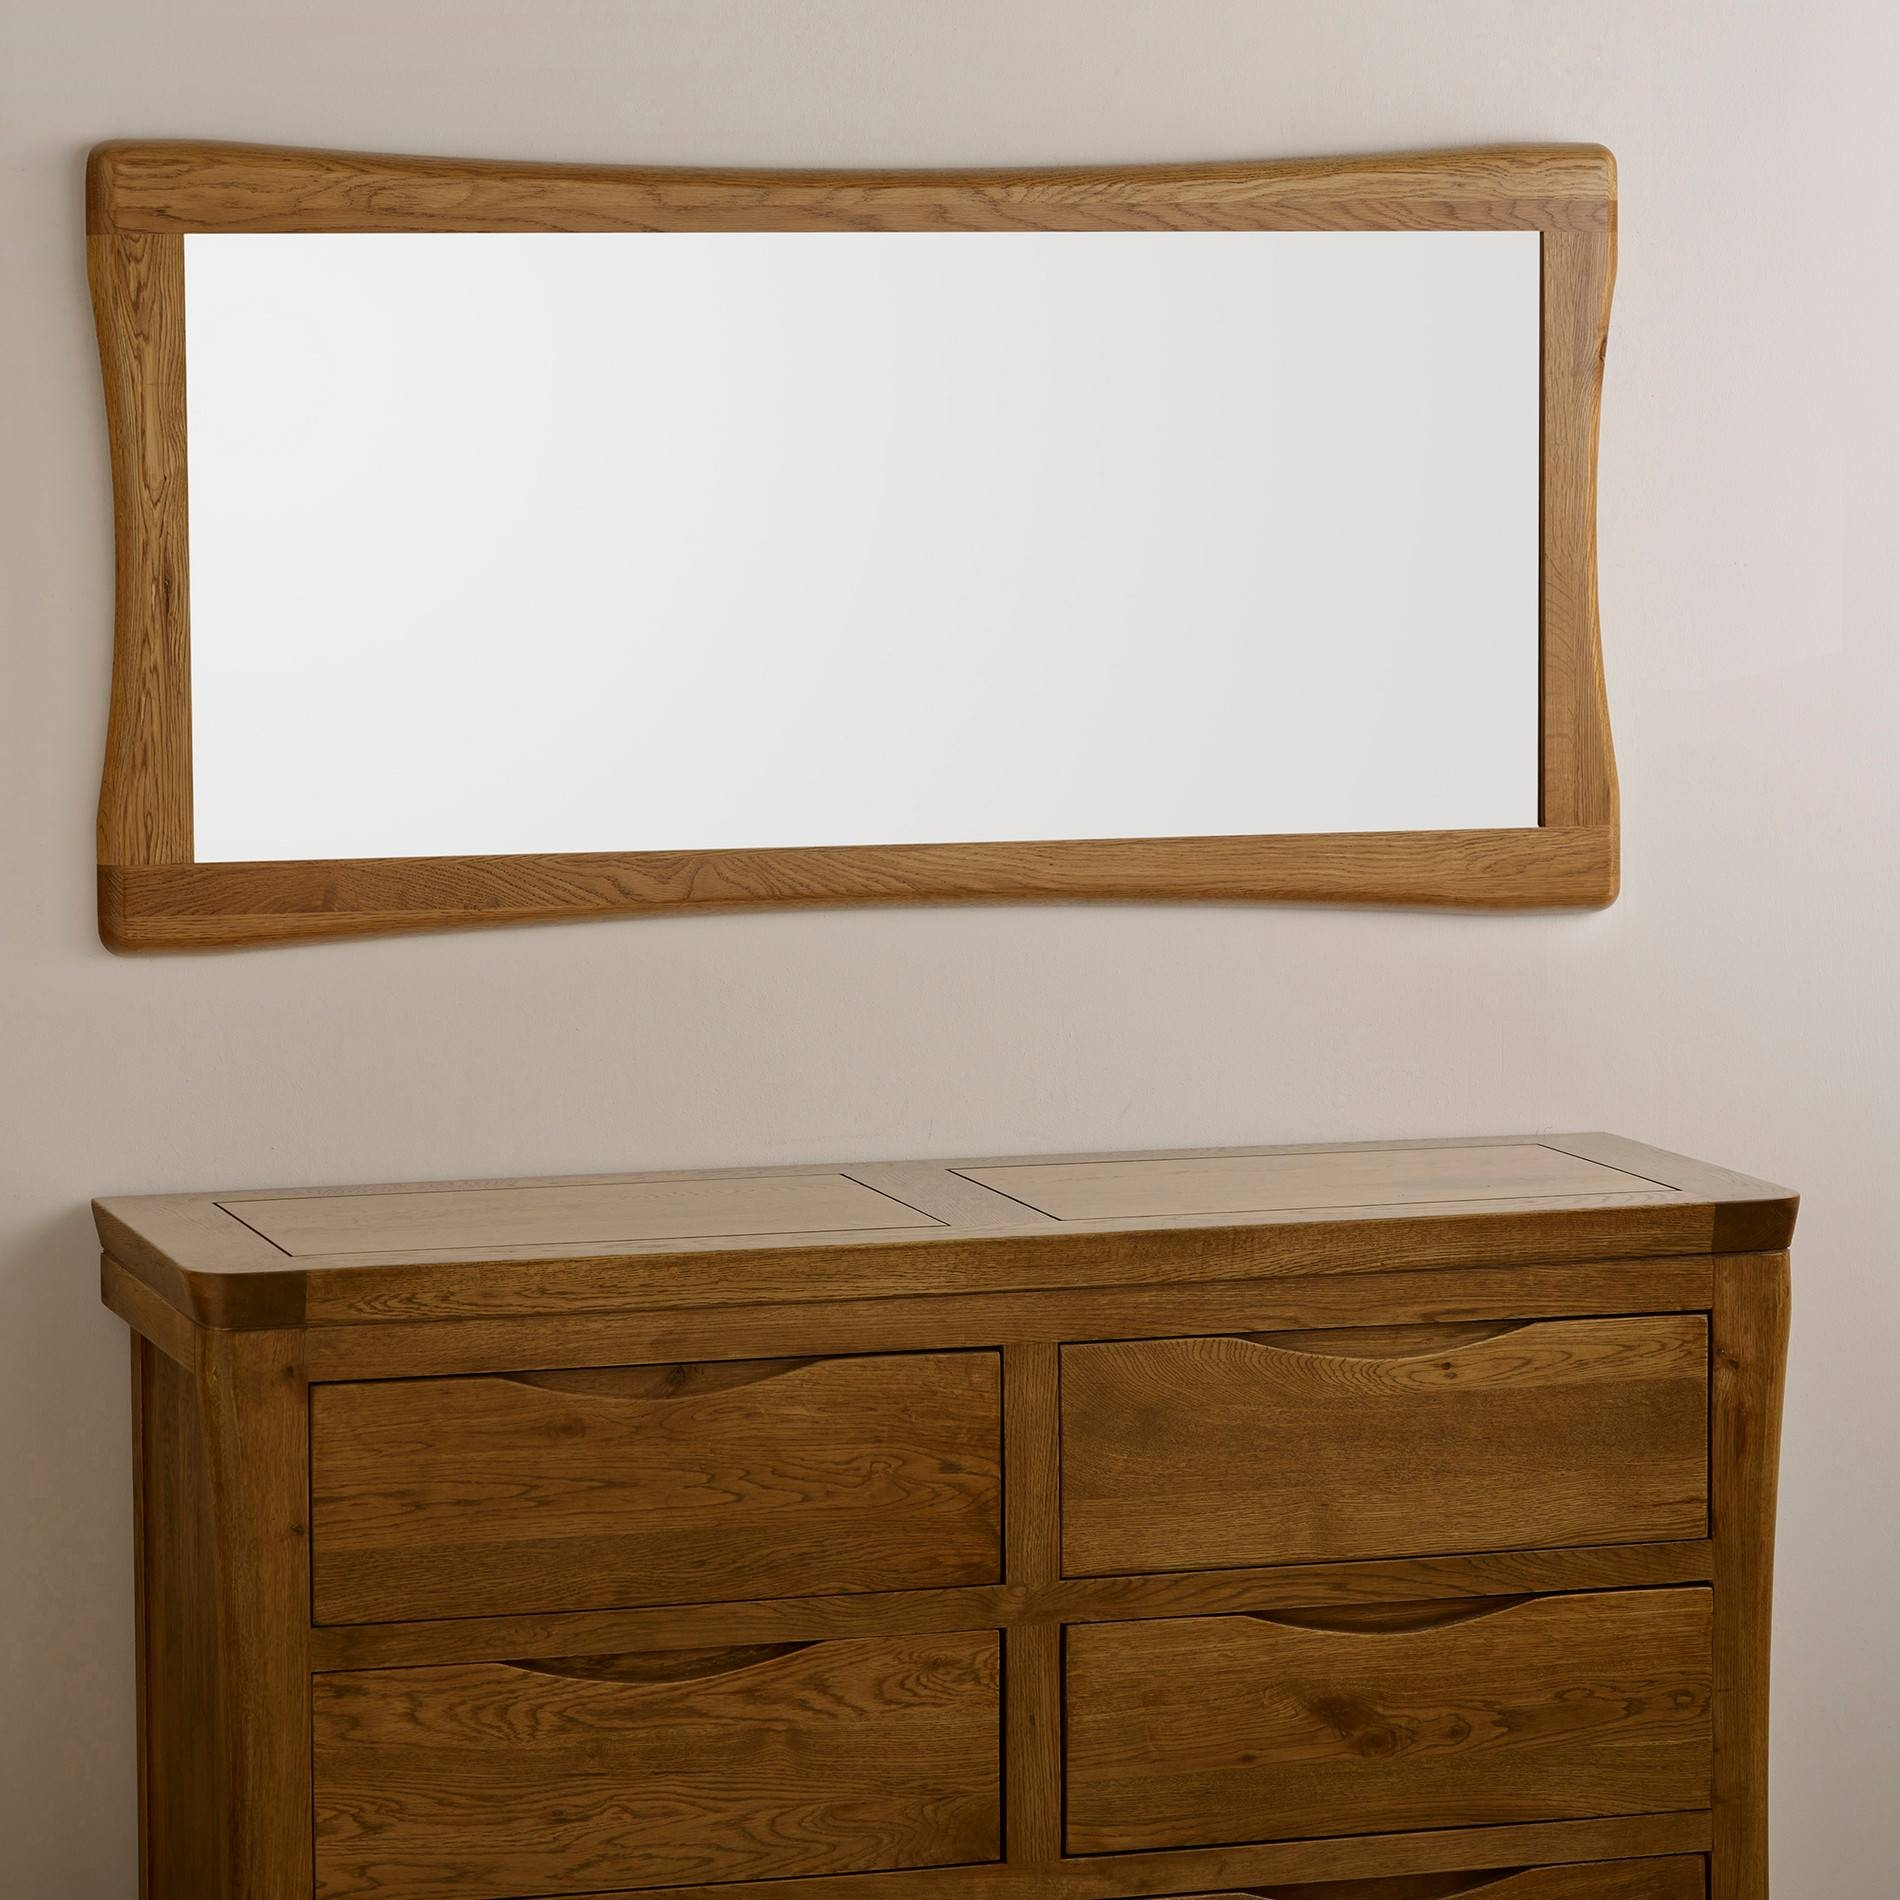 Orrick Wall Mirror In Natural Solid Oak | Oak Furniture Land pertaining to Rustic Oak Mirrors (Image 17 of 25)